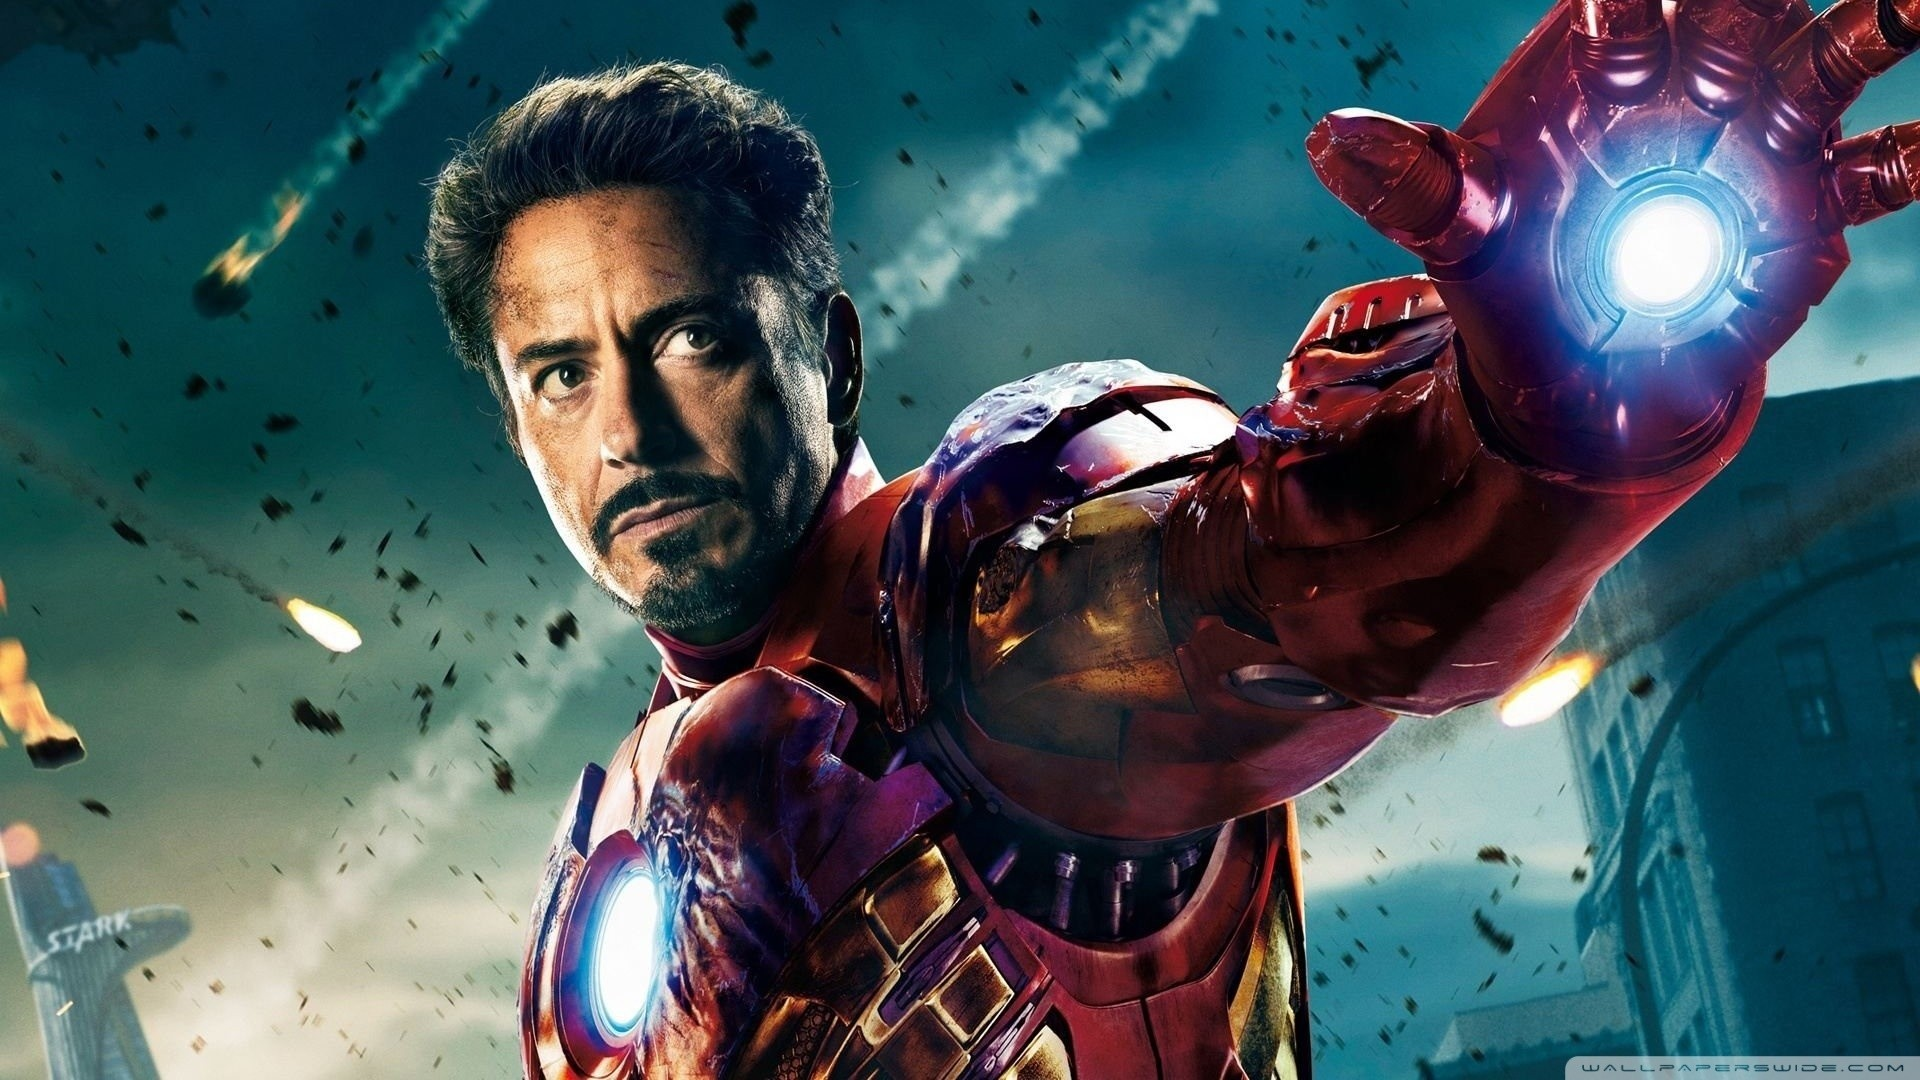 Robert Downey Jr Iron Man Wallpaper ·① WallpaperTag